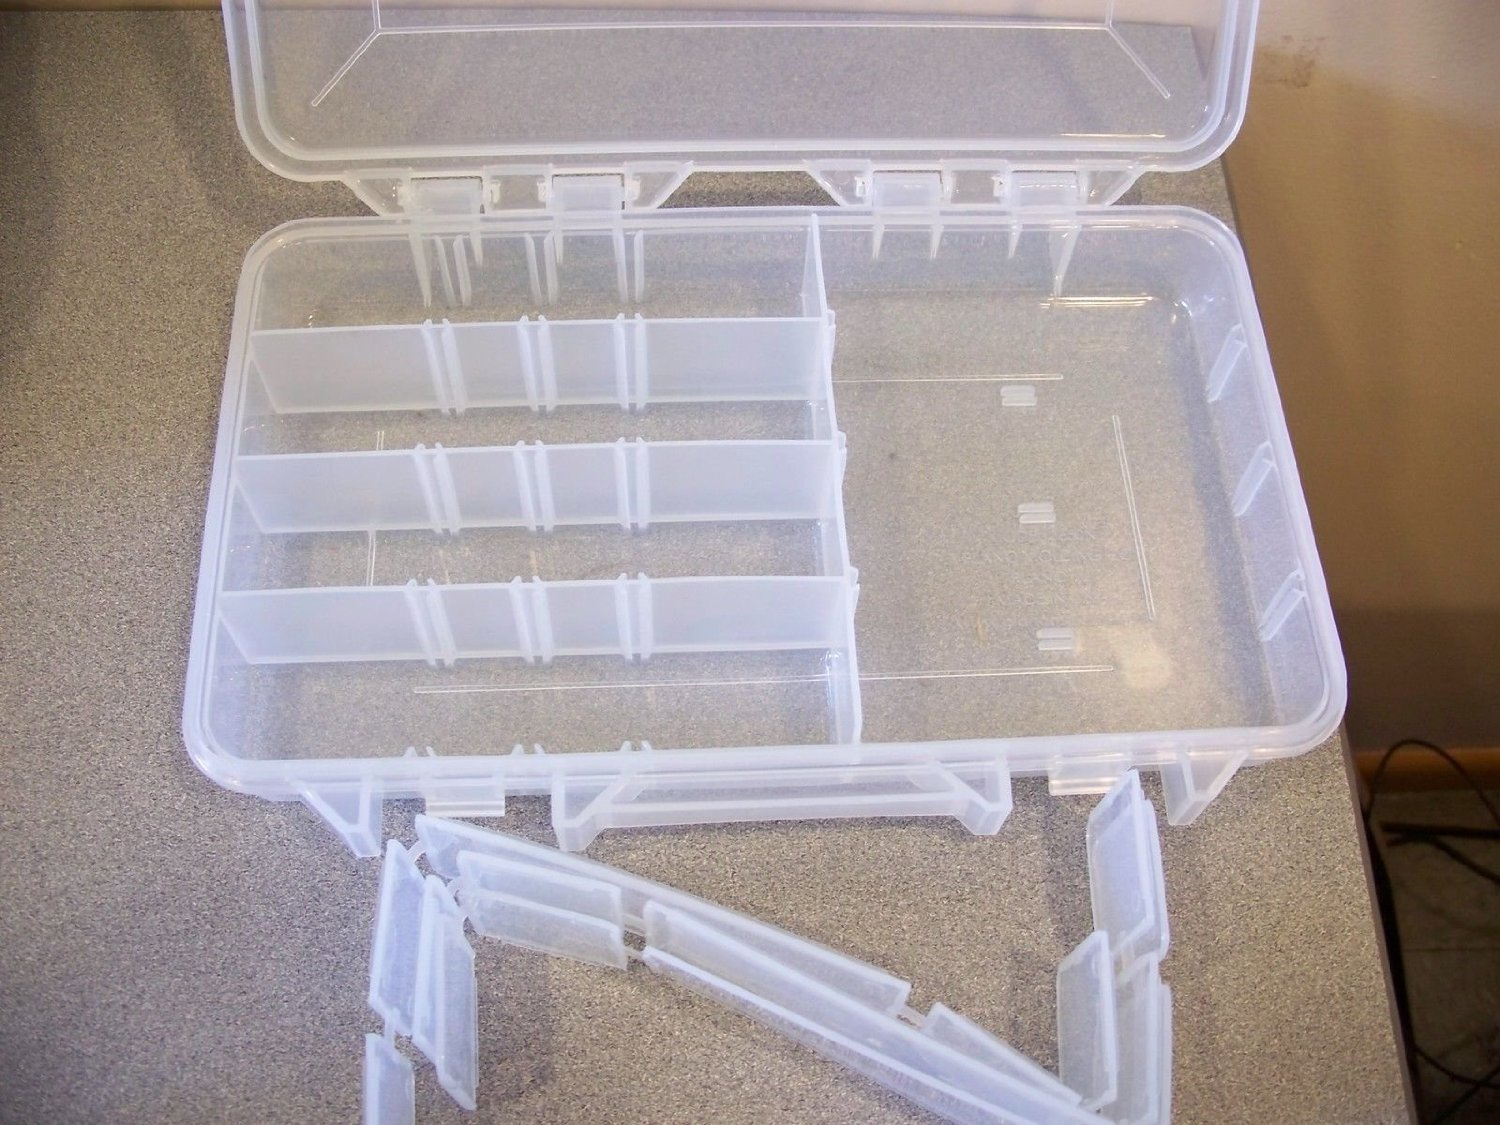 Plano Prolatch Stowaway Storage with Adjustable Dividers 3650 Series